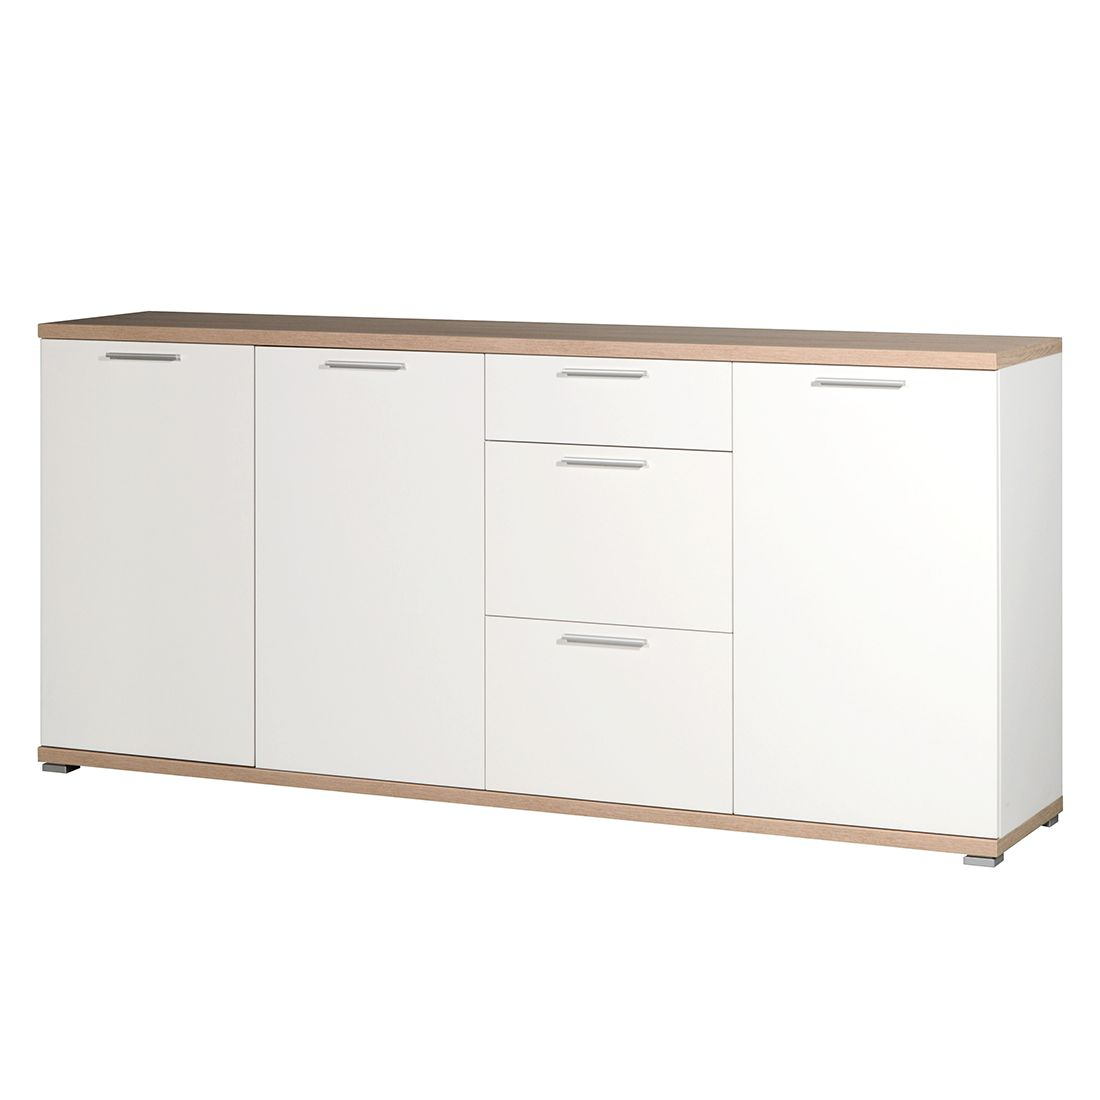 sideboard texture ii wei sonoma eiche dekor top square g nstig kaufen. Black Bedroom Furniture Sets. Home Design Ideas